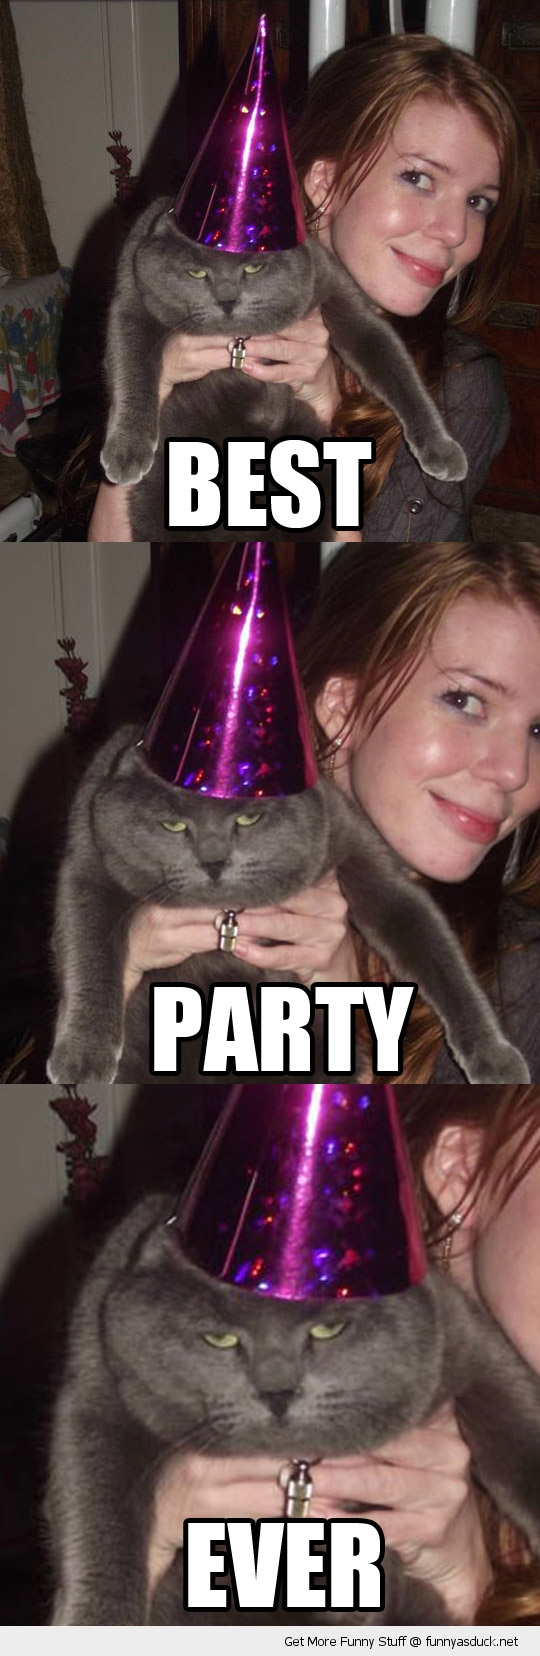 best party ever cat lolcat animal bored funny pics pictures pic picture image photo images photos lol